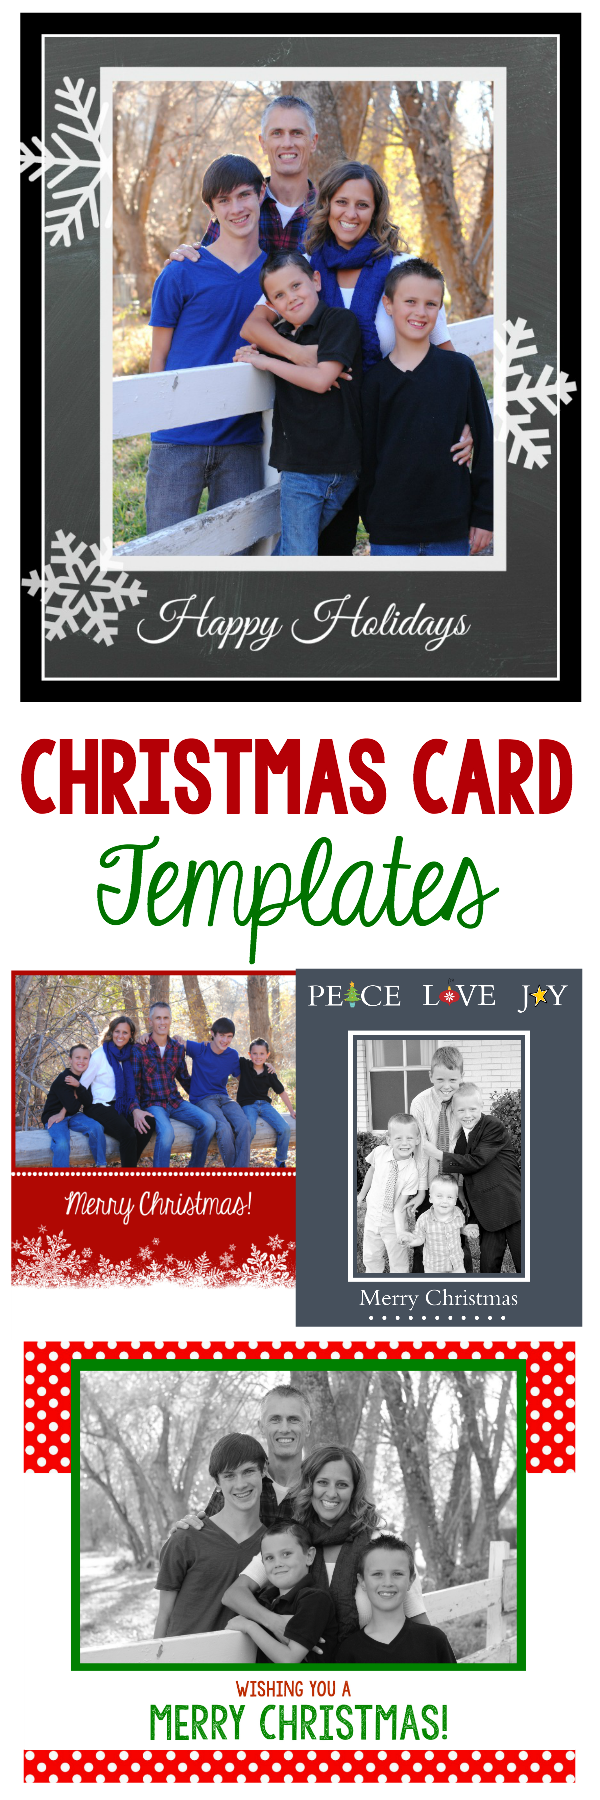 21X21 Christmas Photo Card Template Free - Cards Design Templates In 4x6 Photo Card Template Free